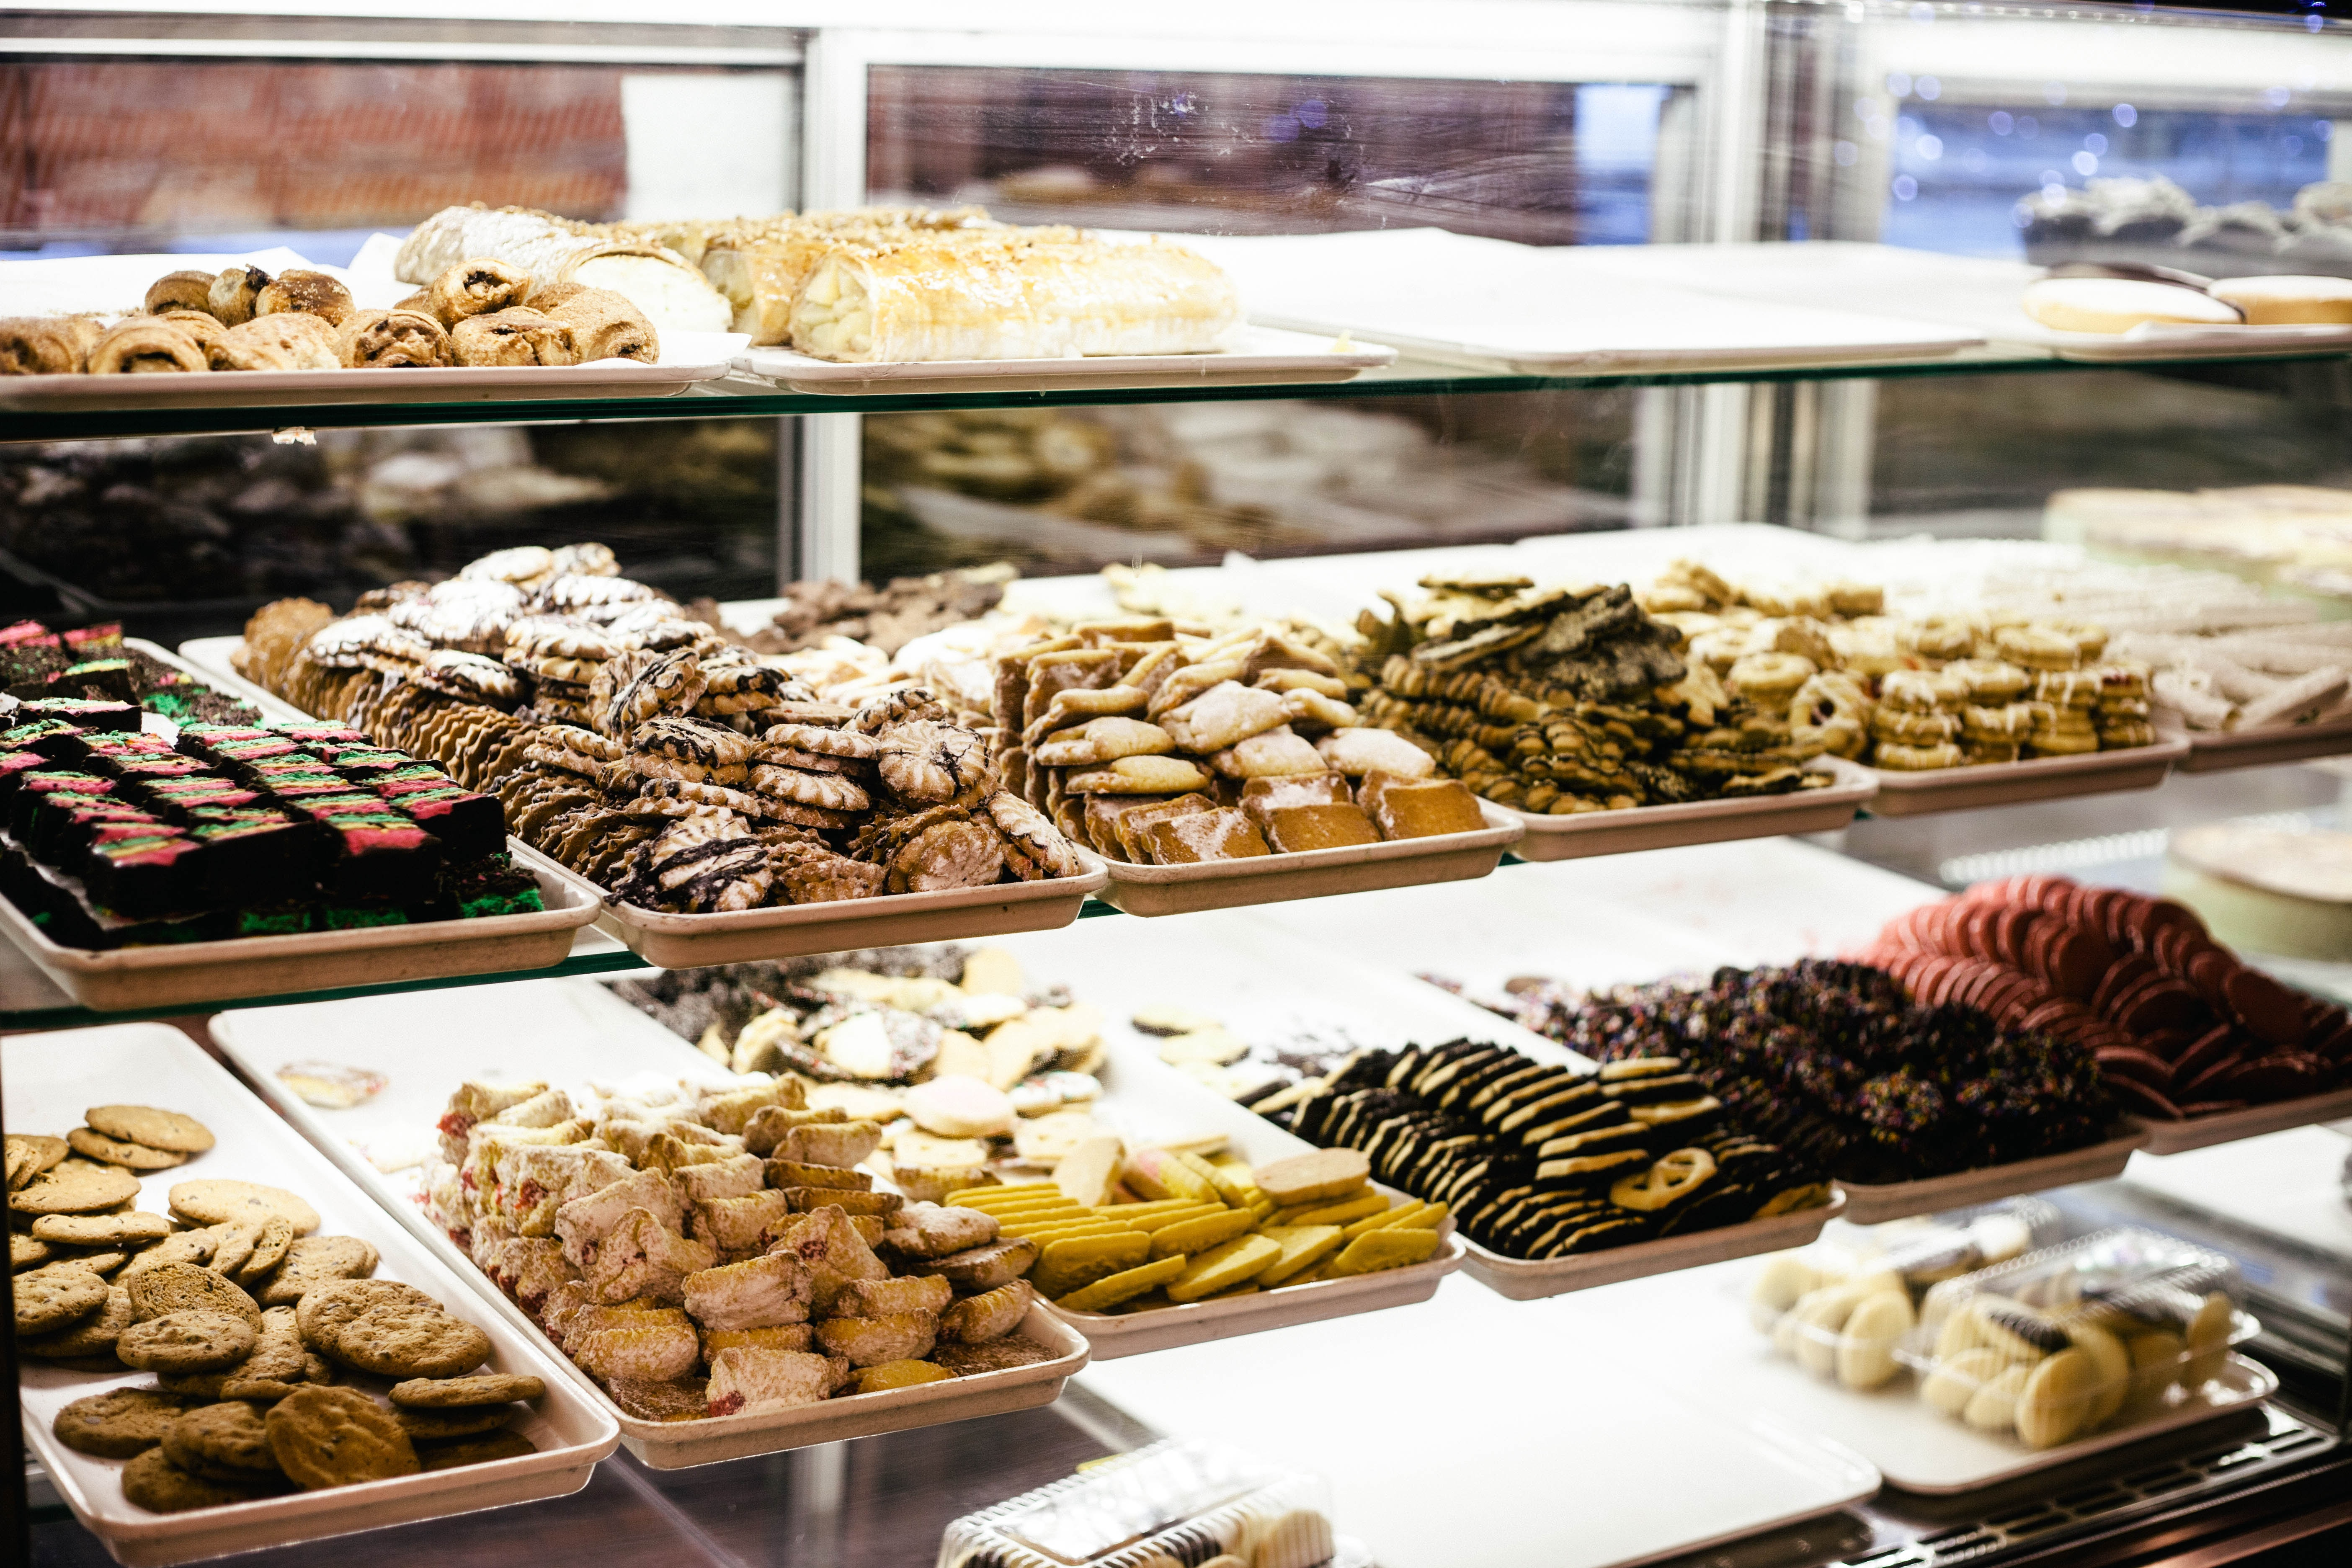 When you purchase a treat, IoT could play a role.